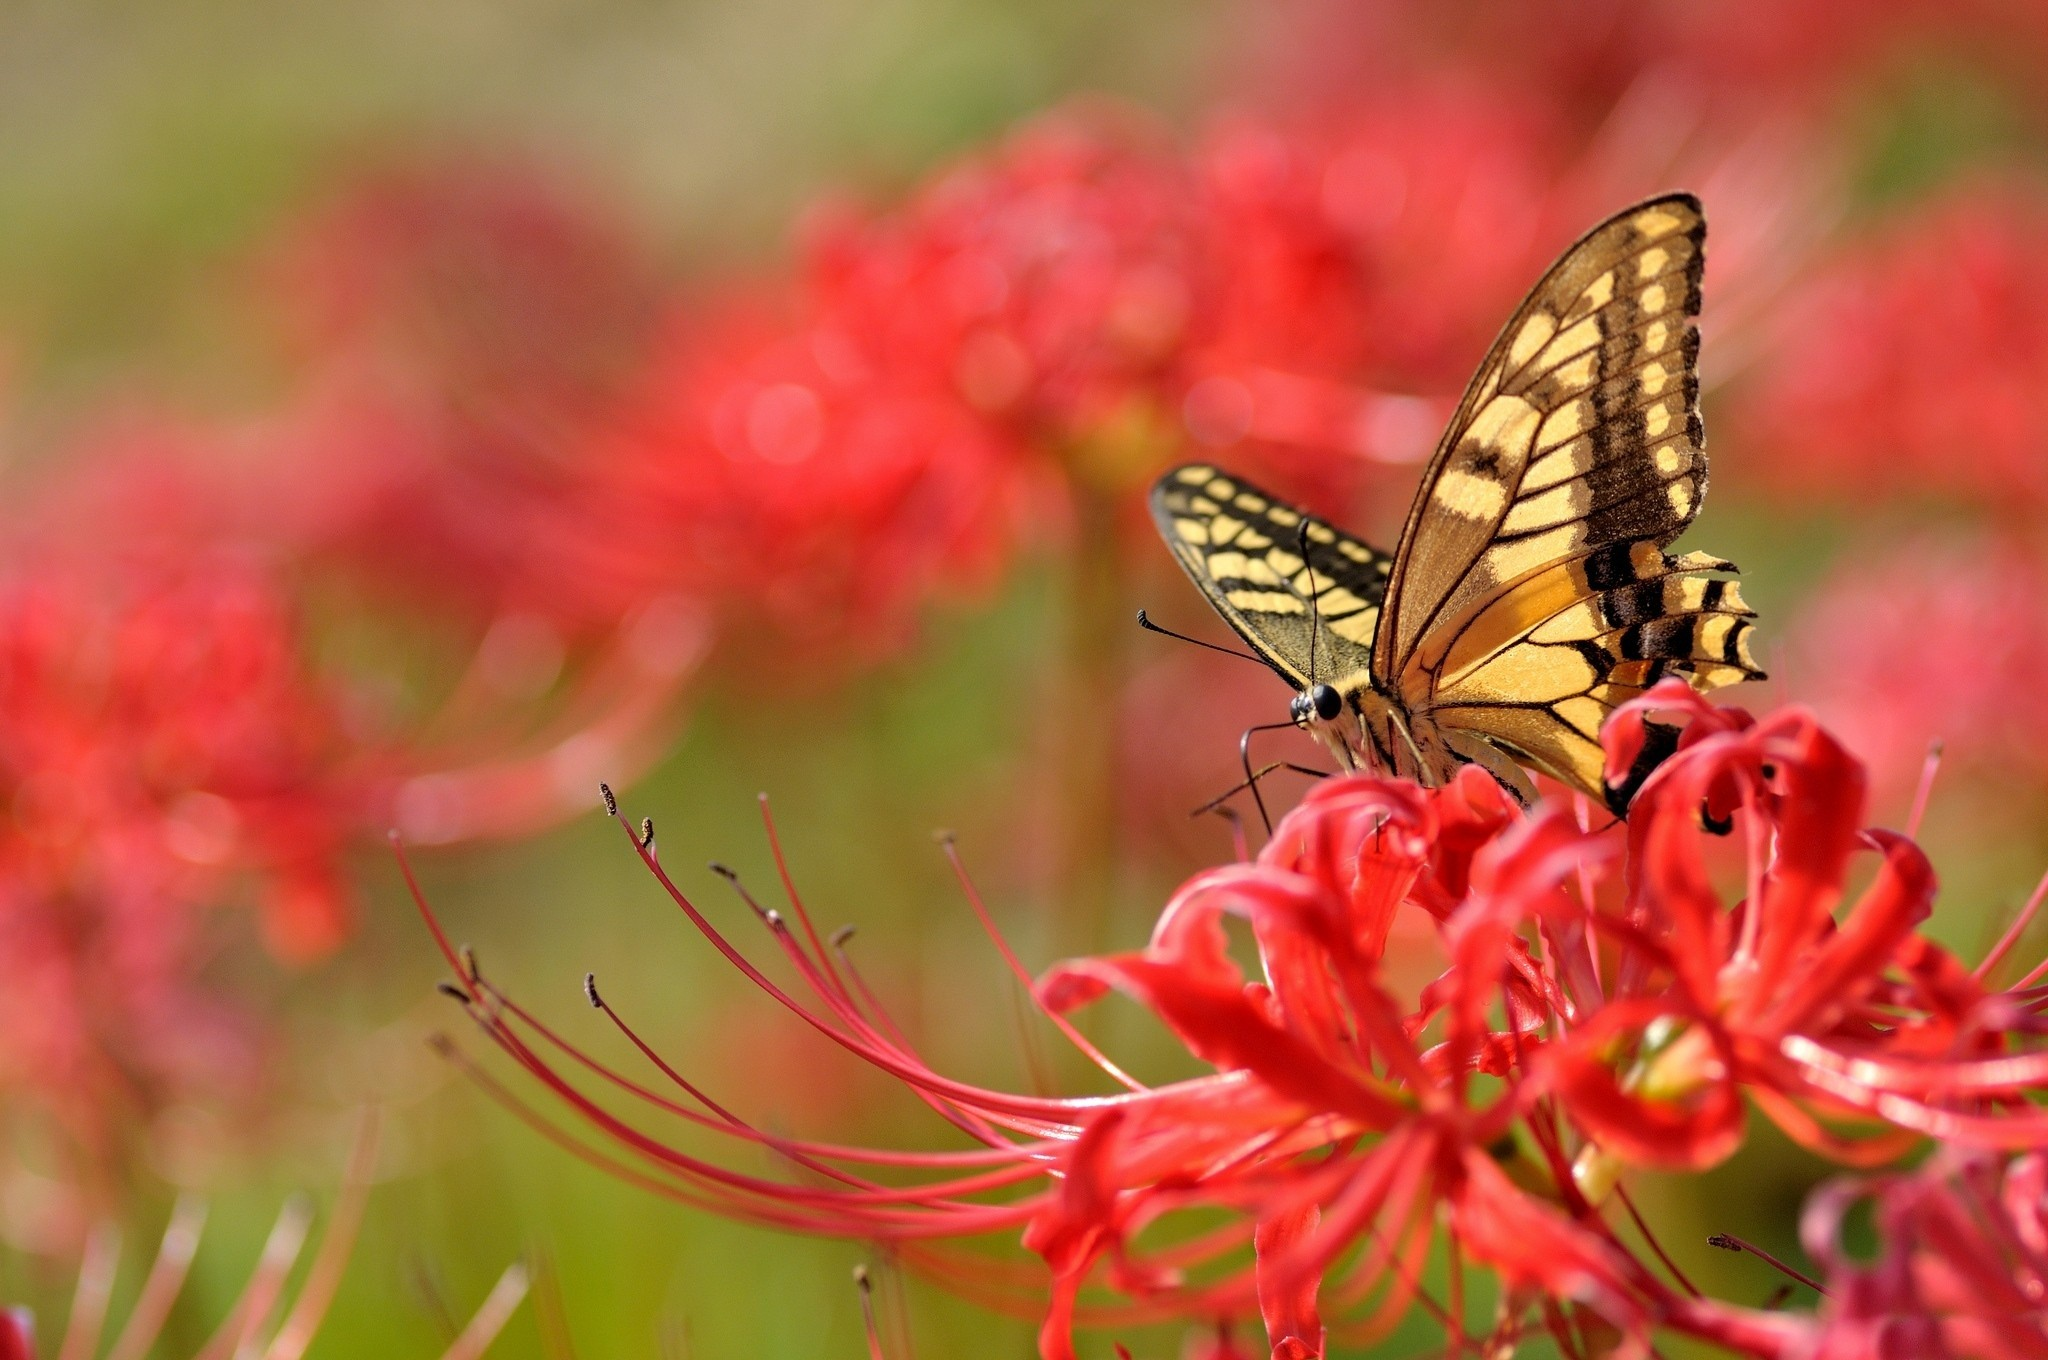 Res: 2048x1360, Animal - Butterfly Wallpaper